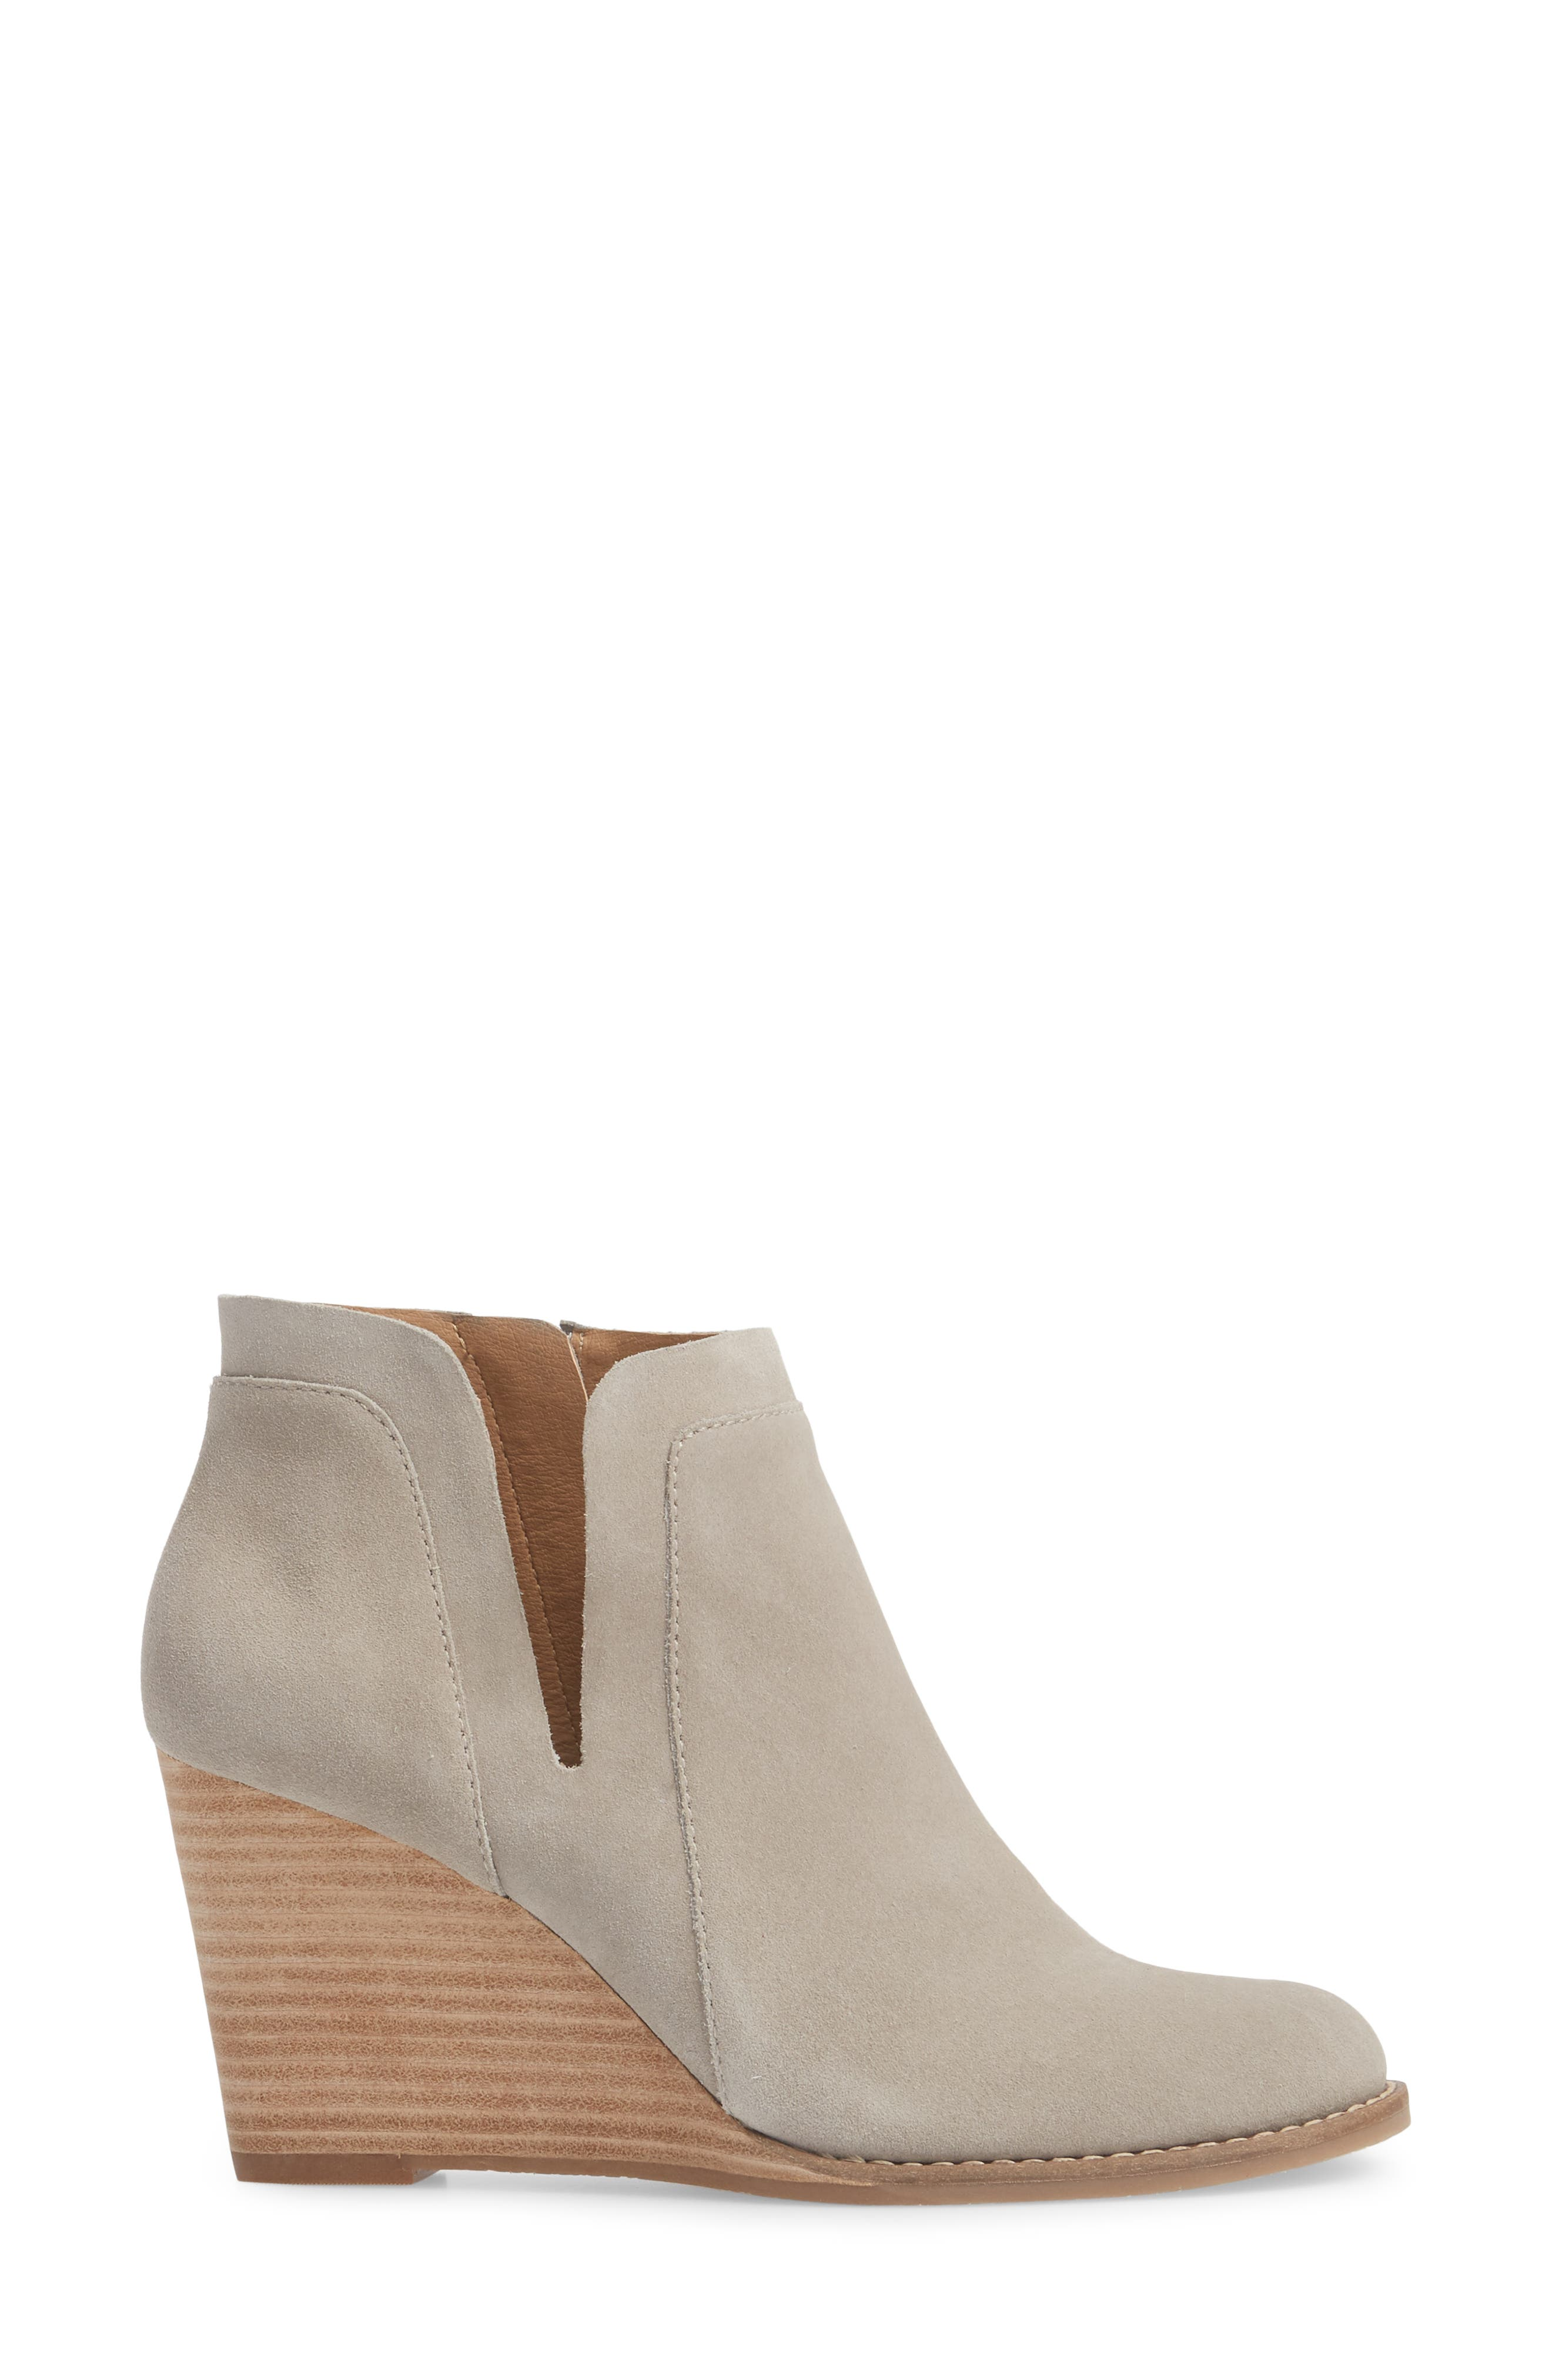 Yabba Wedge Bootie,                             Alternate thumbnail 3, color,                             Grey Suede